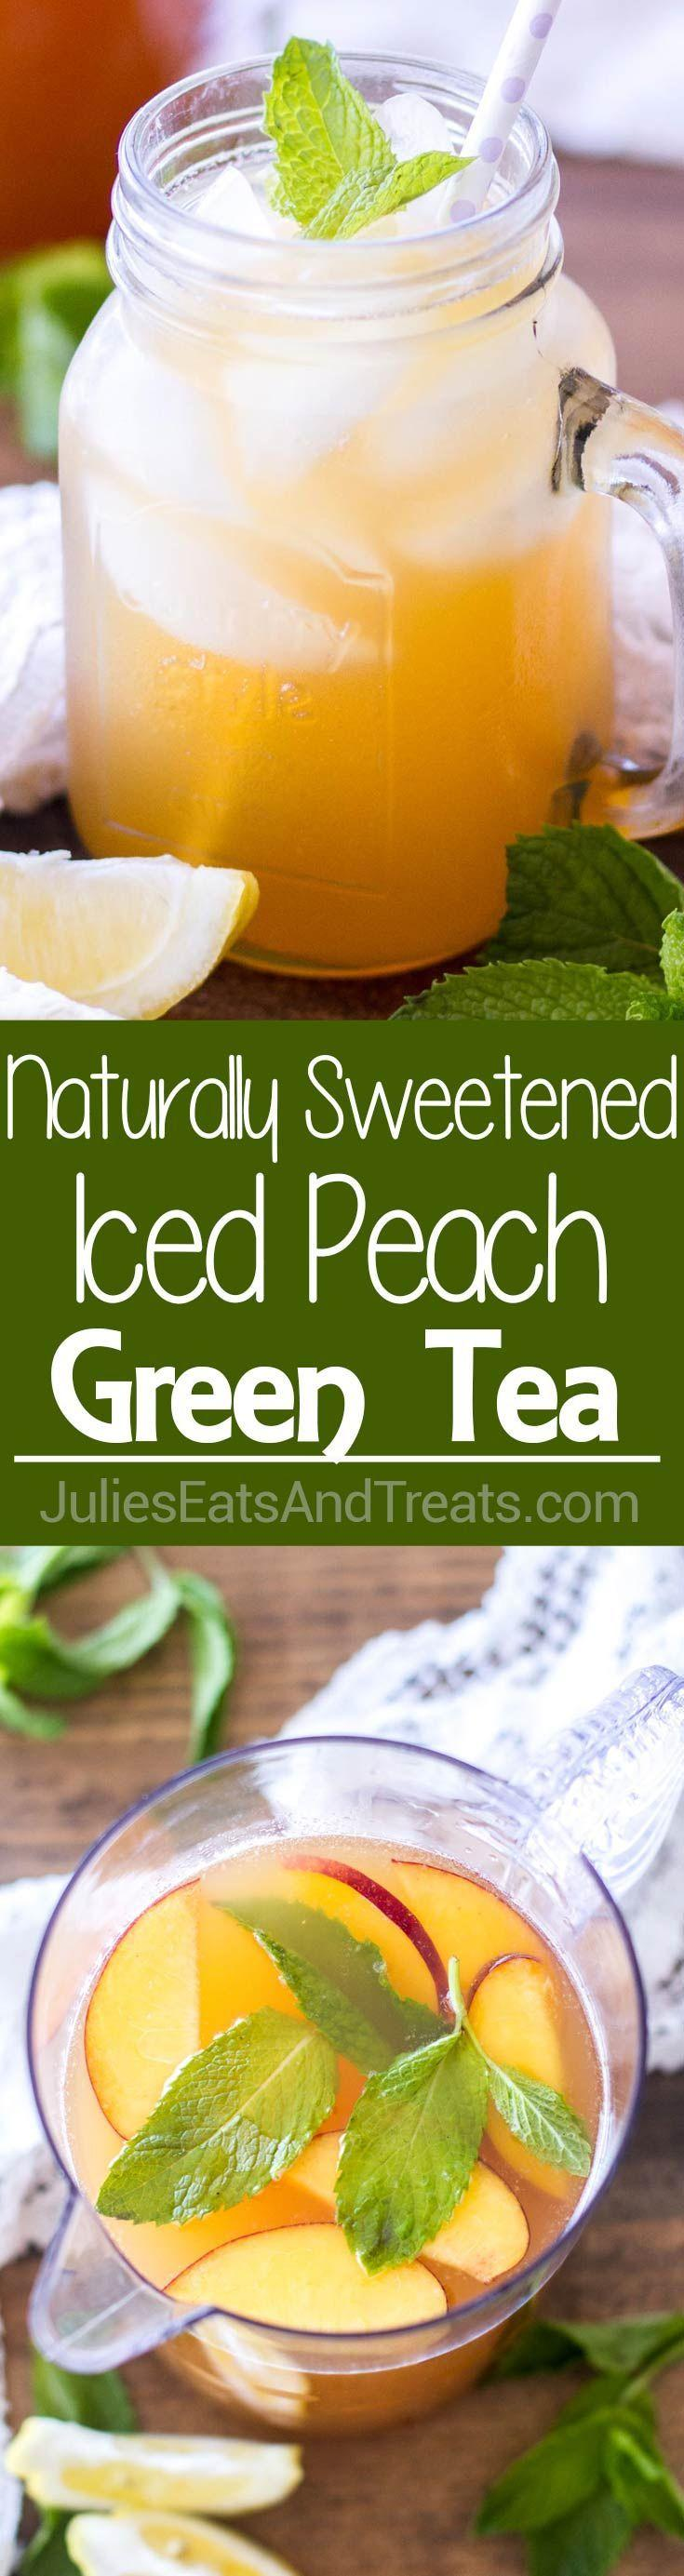 Wedding - Naturally Sweetened Iced Peach Green Tea